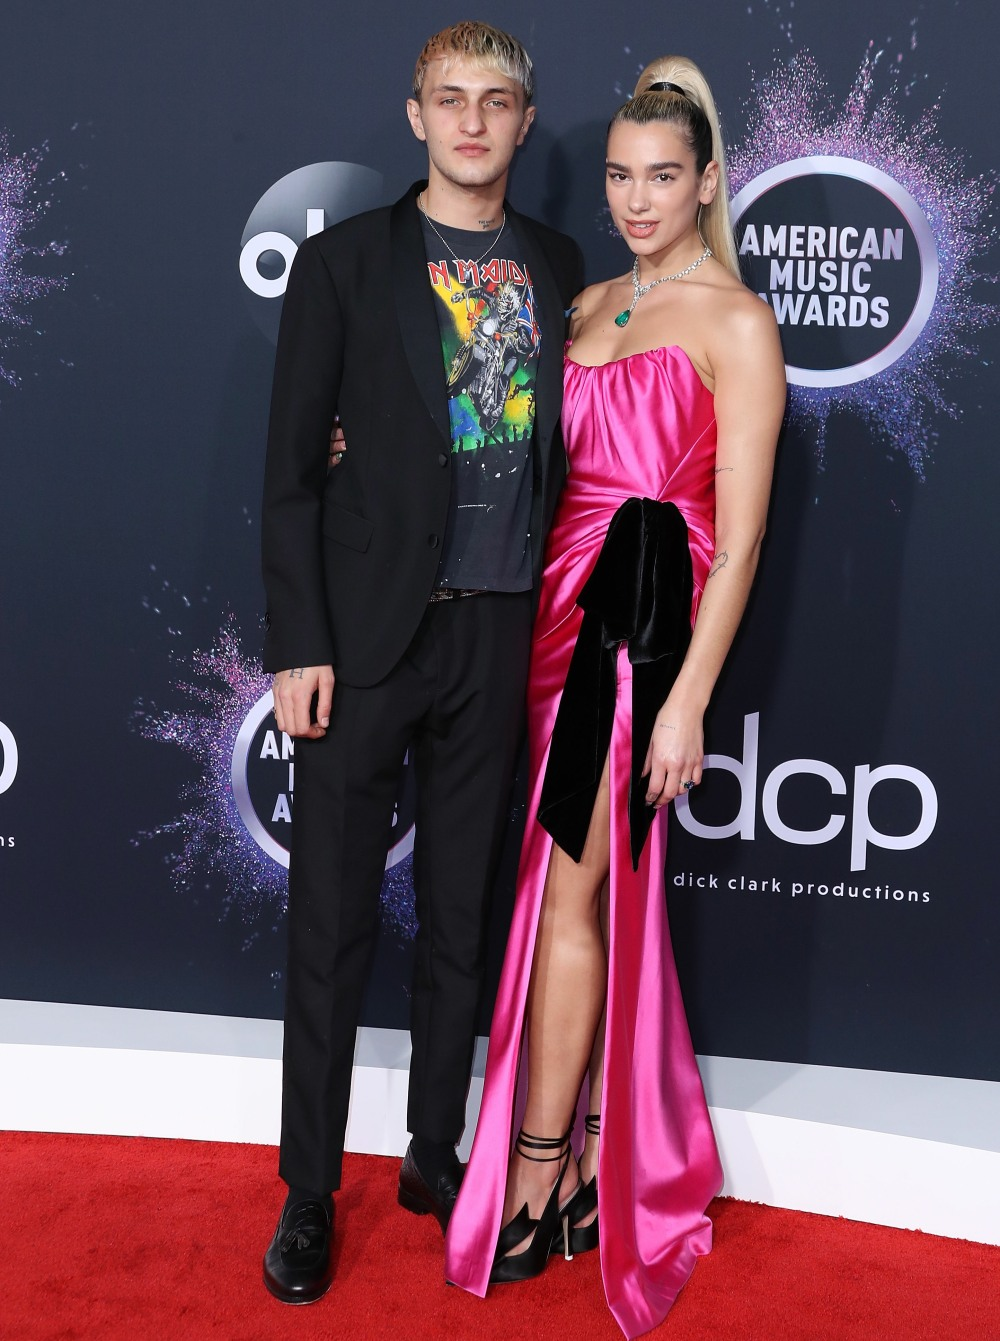 Anwar Hadid and singer Dua Lipa arrive at the 2019 American Music Awards held at Microsoft Theatre L.A. Live on November 24, 2019 in Los Angeles, California, United States.